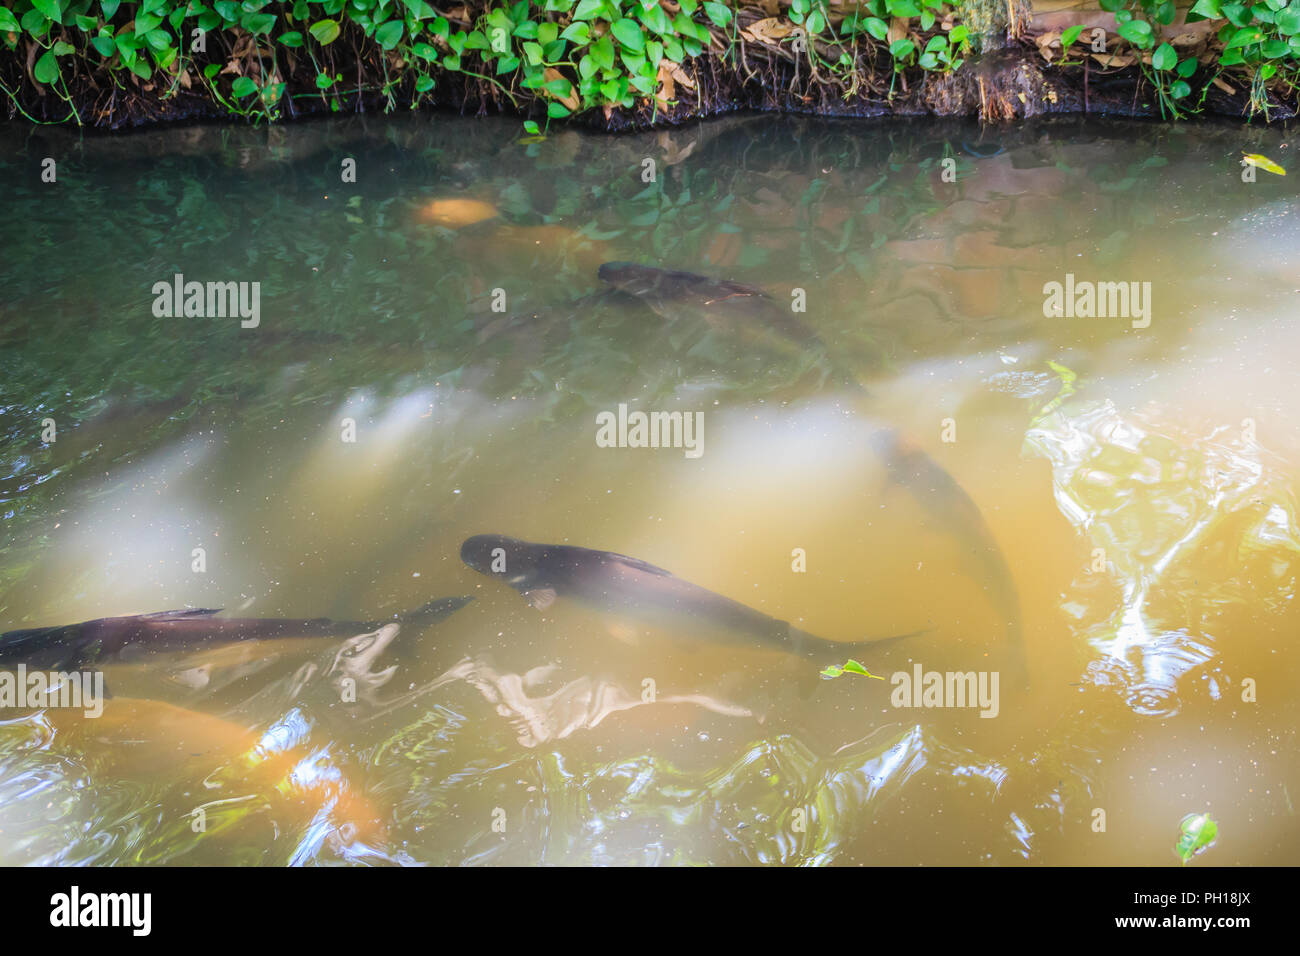 School of fishes in the clear freshwater canal with natural green bank and sunlight reflection. Peaceful canal surrounded by green nature and fishes s Stock Photo